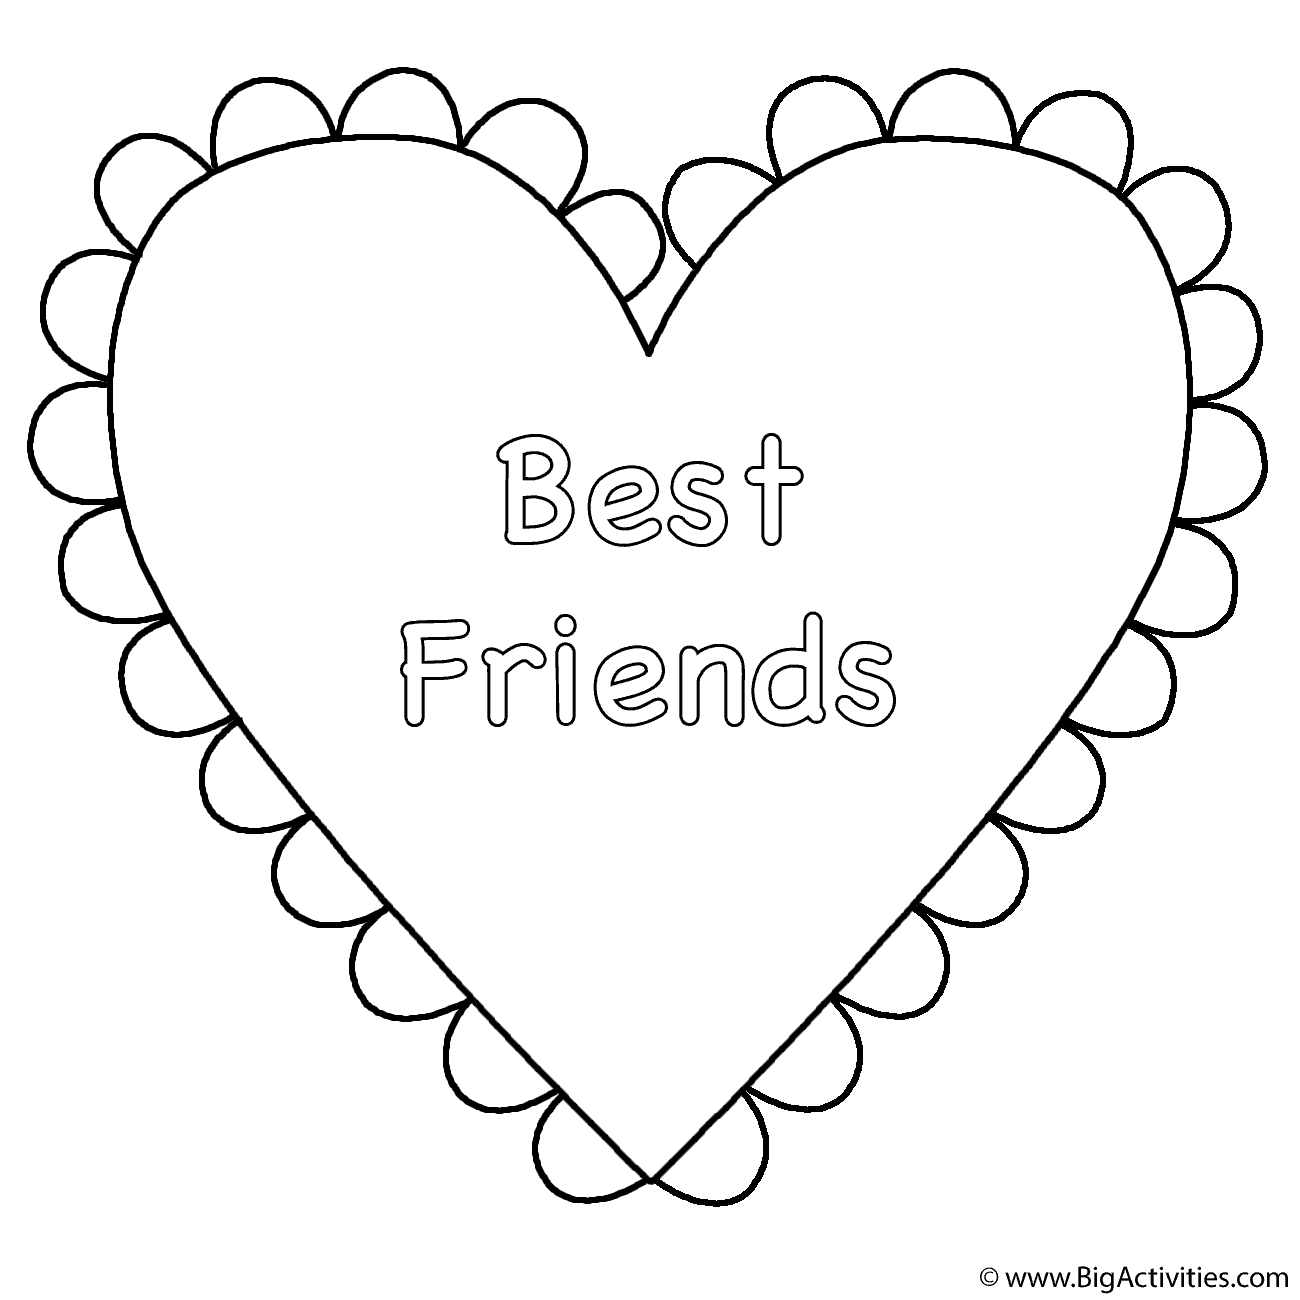 Valentines Day Hearts Coloring Pages Heart Best Friends Coloring Page Valentines Day